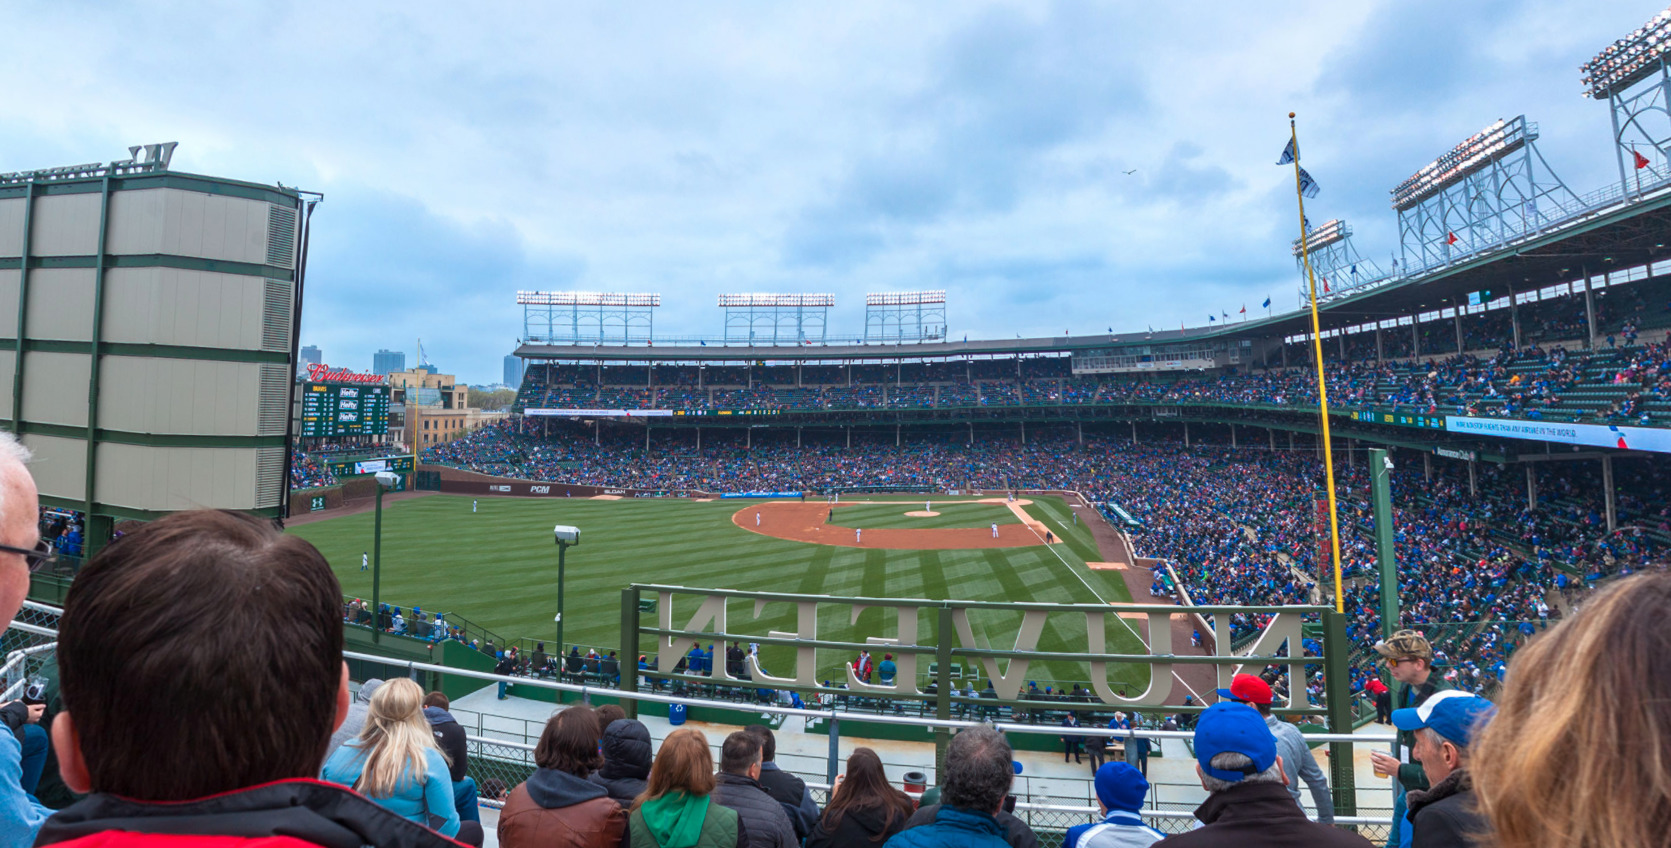 Cubs_Rooftop View